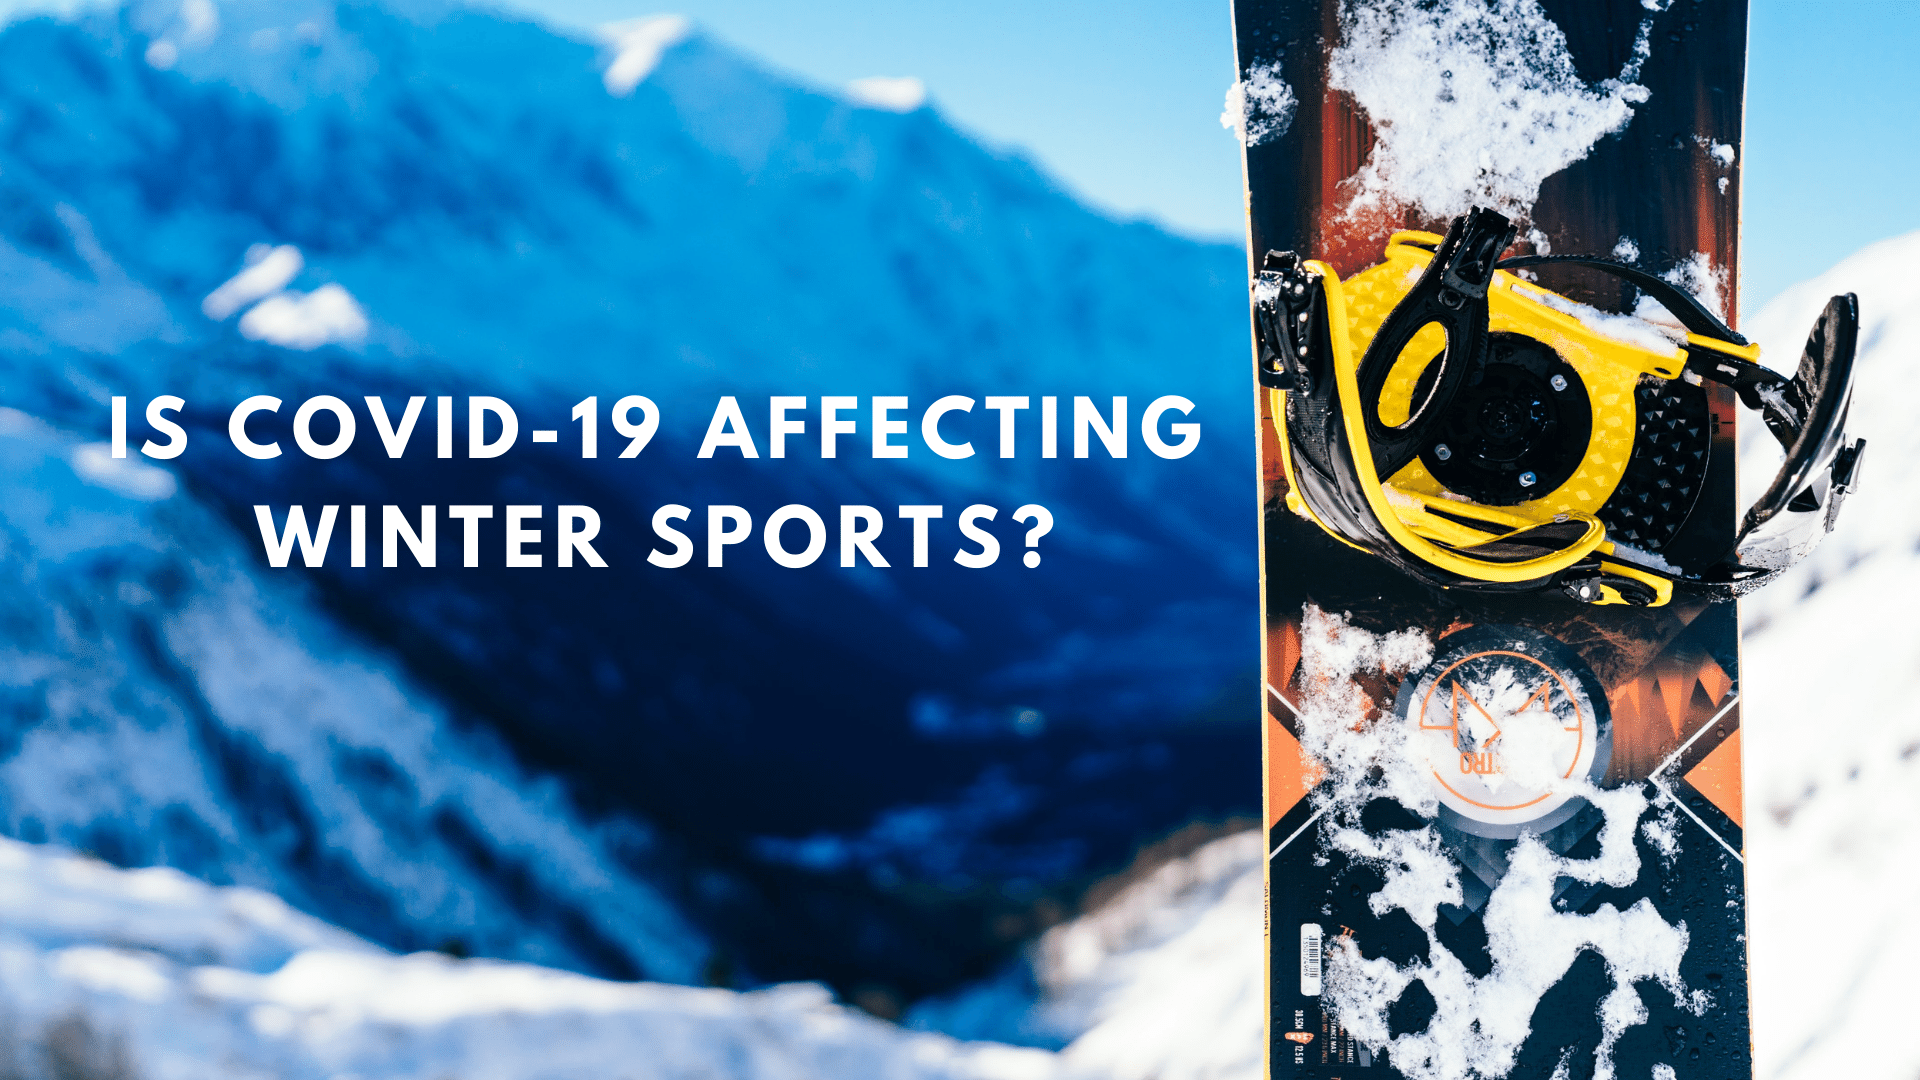 Is COVID-19 Affecting Winter Sports?